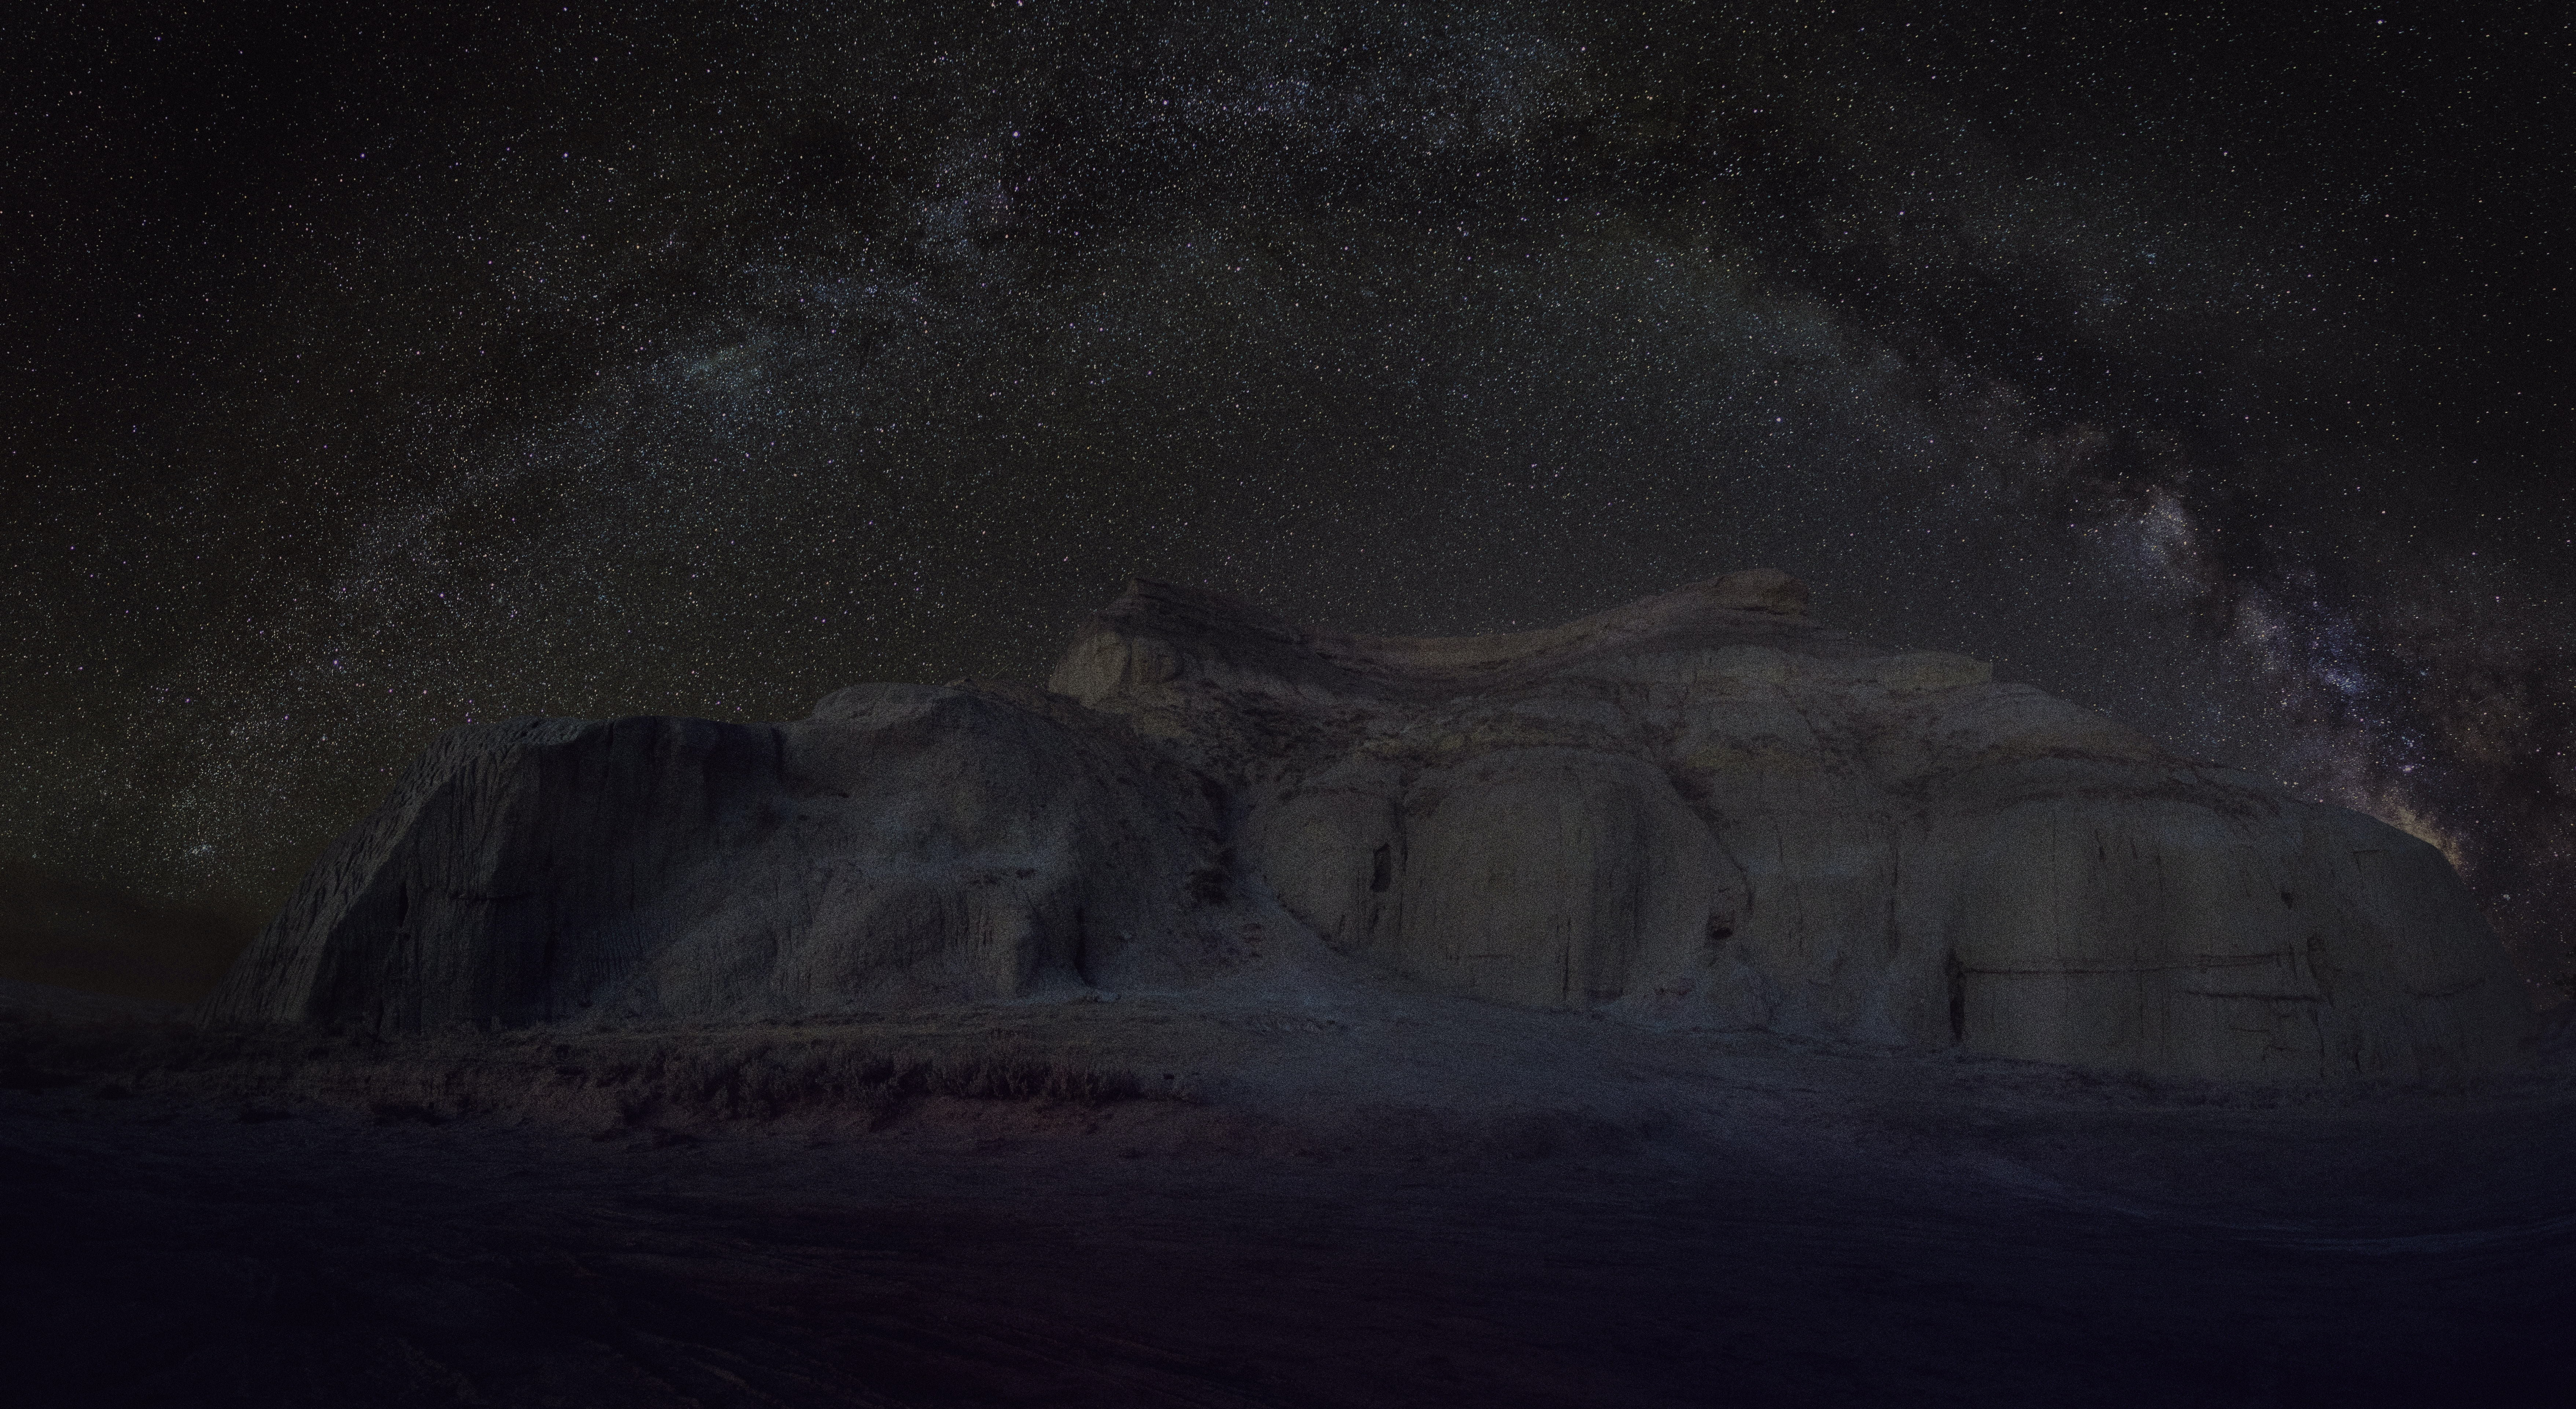 rock formation during nighttime